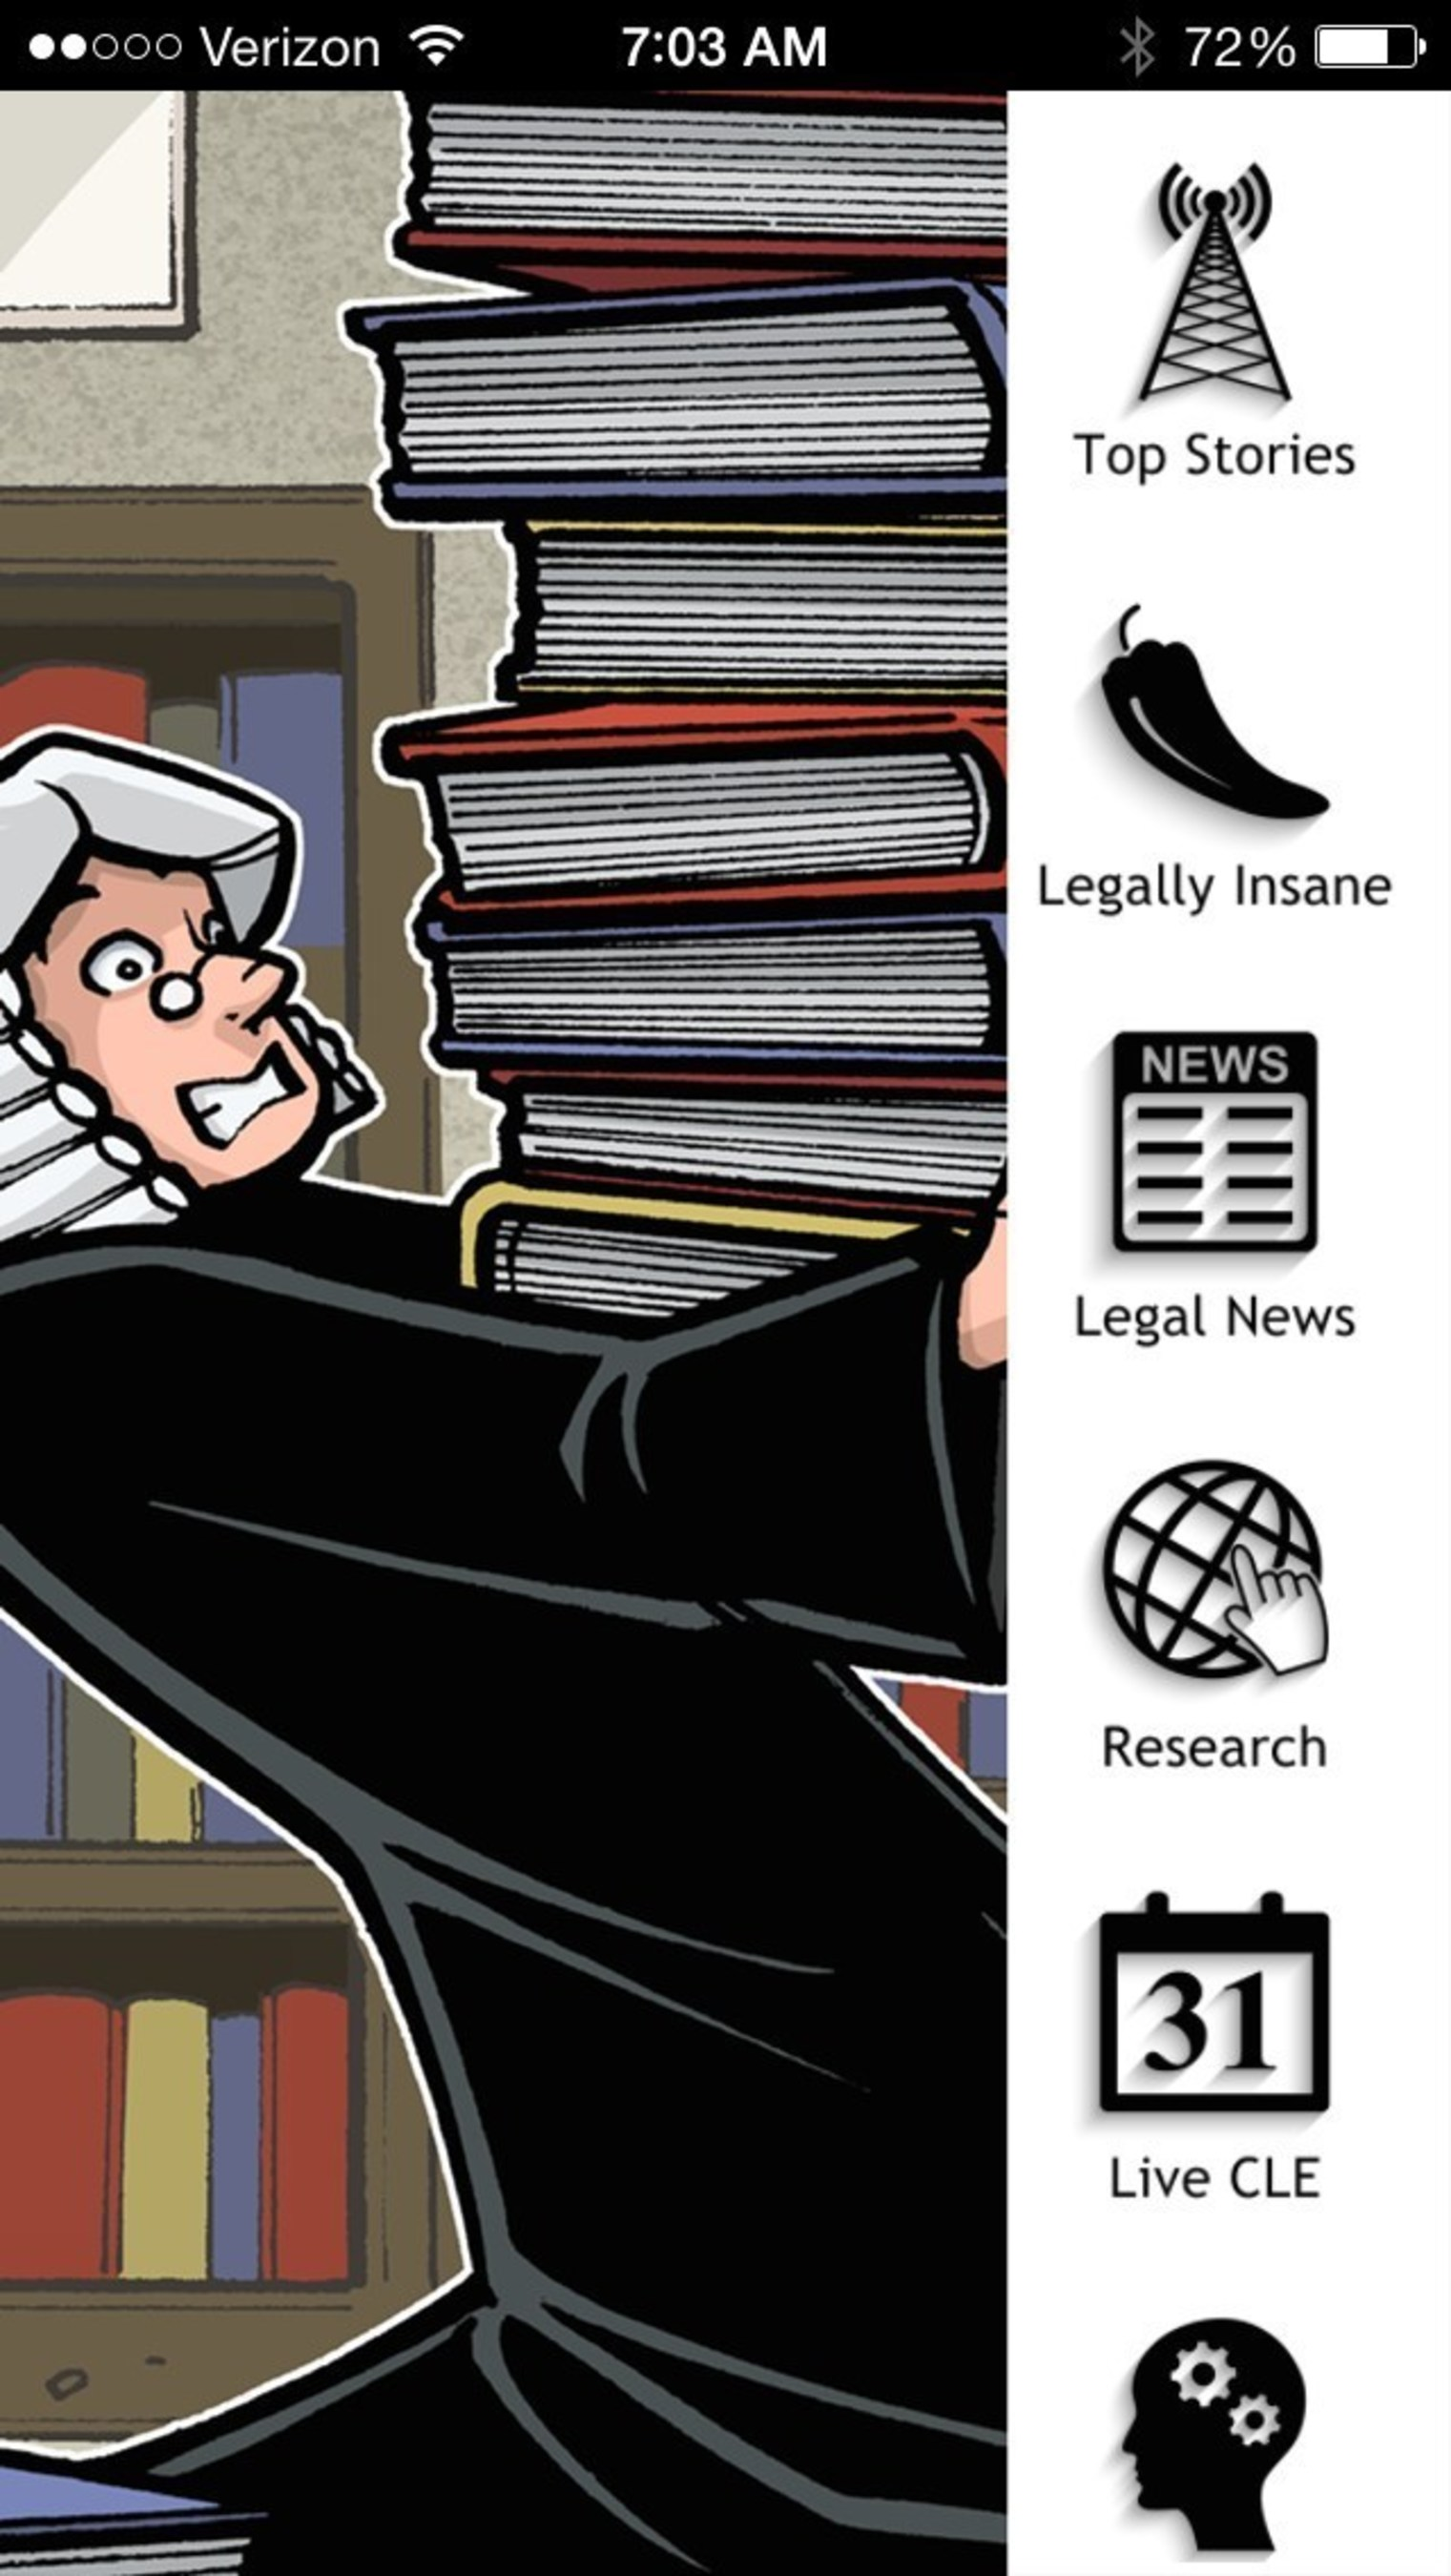 Legal Newsance - iPhone and Android home screen